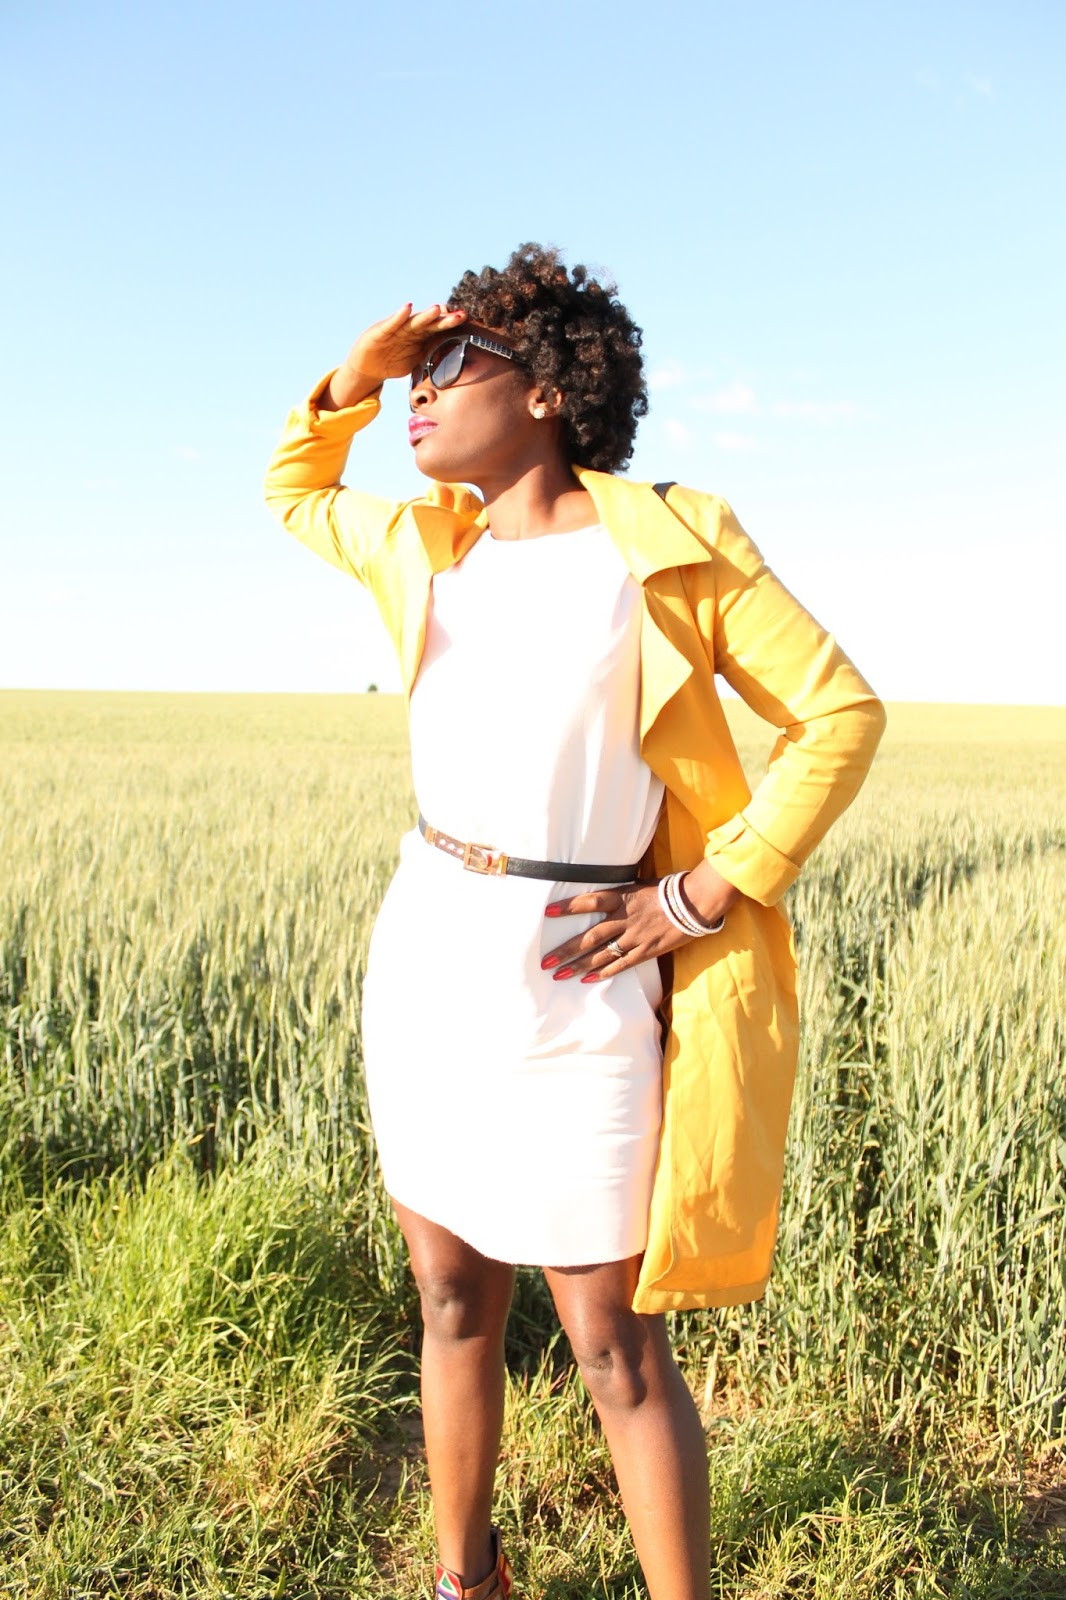 braidout-twistout-fashionblogger-hype-naturalhair-yellowtrench-whitedress